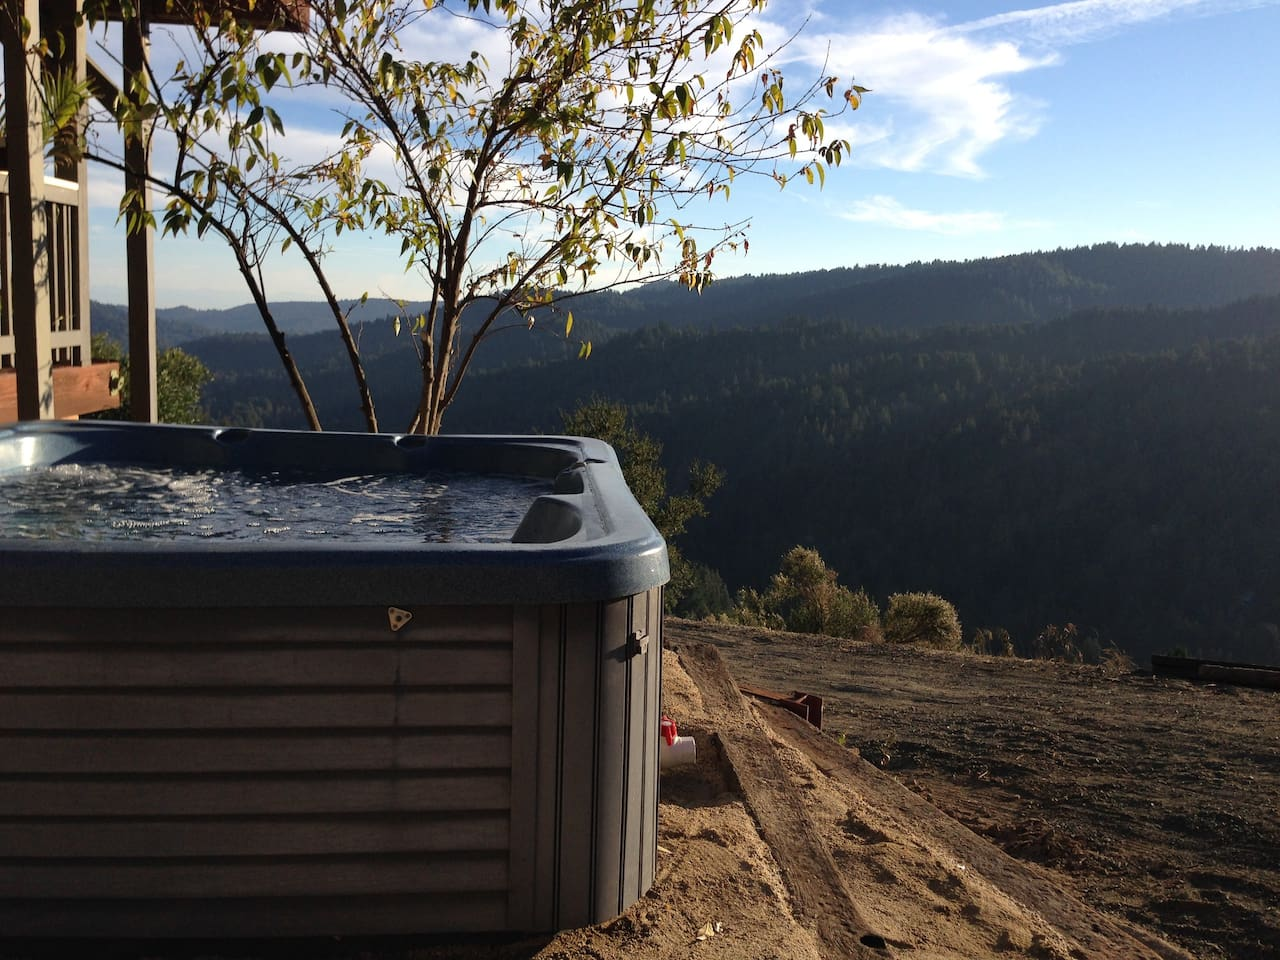 You own private Hot Tub with a View. Warm water and Jets after a hike!